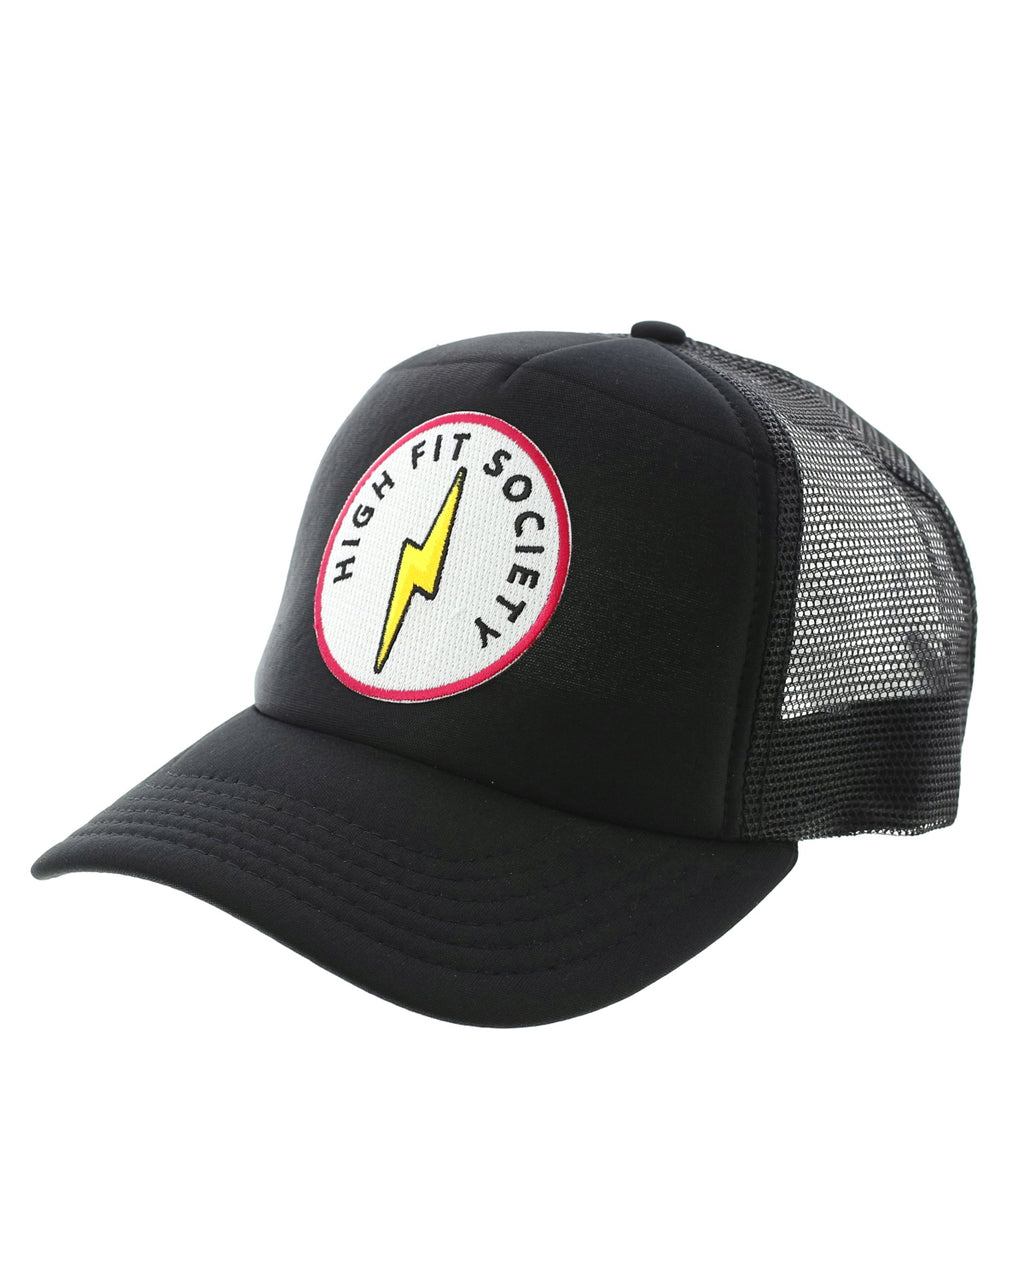 High Fit Society Patch Trucker Hat